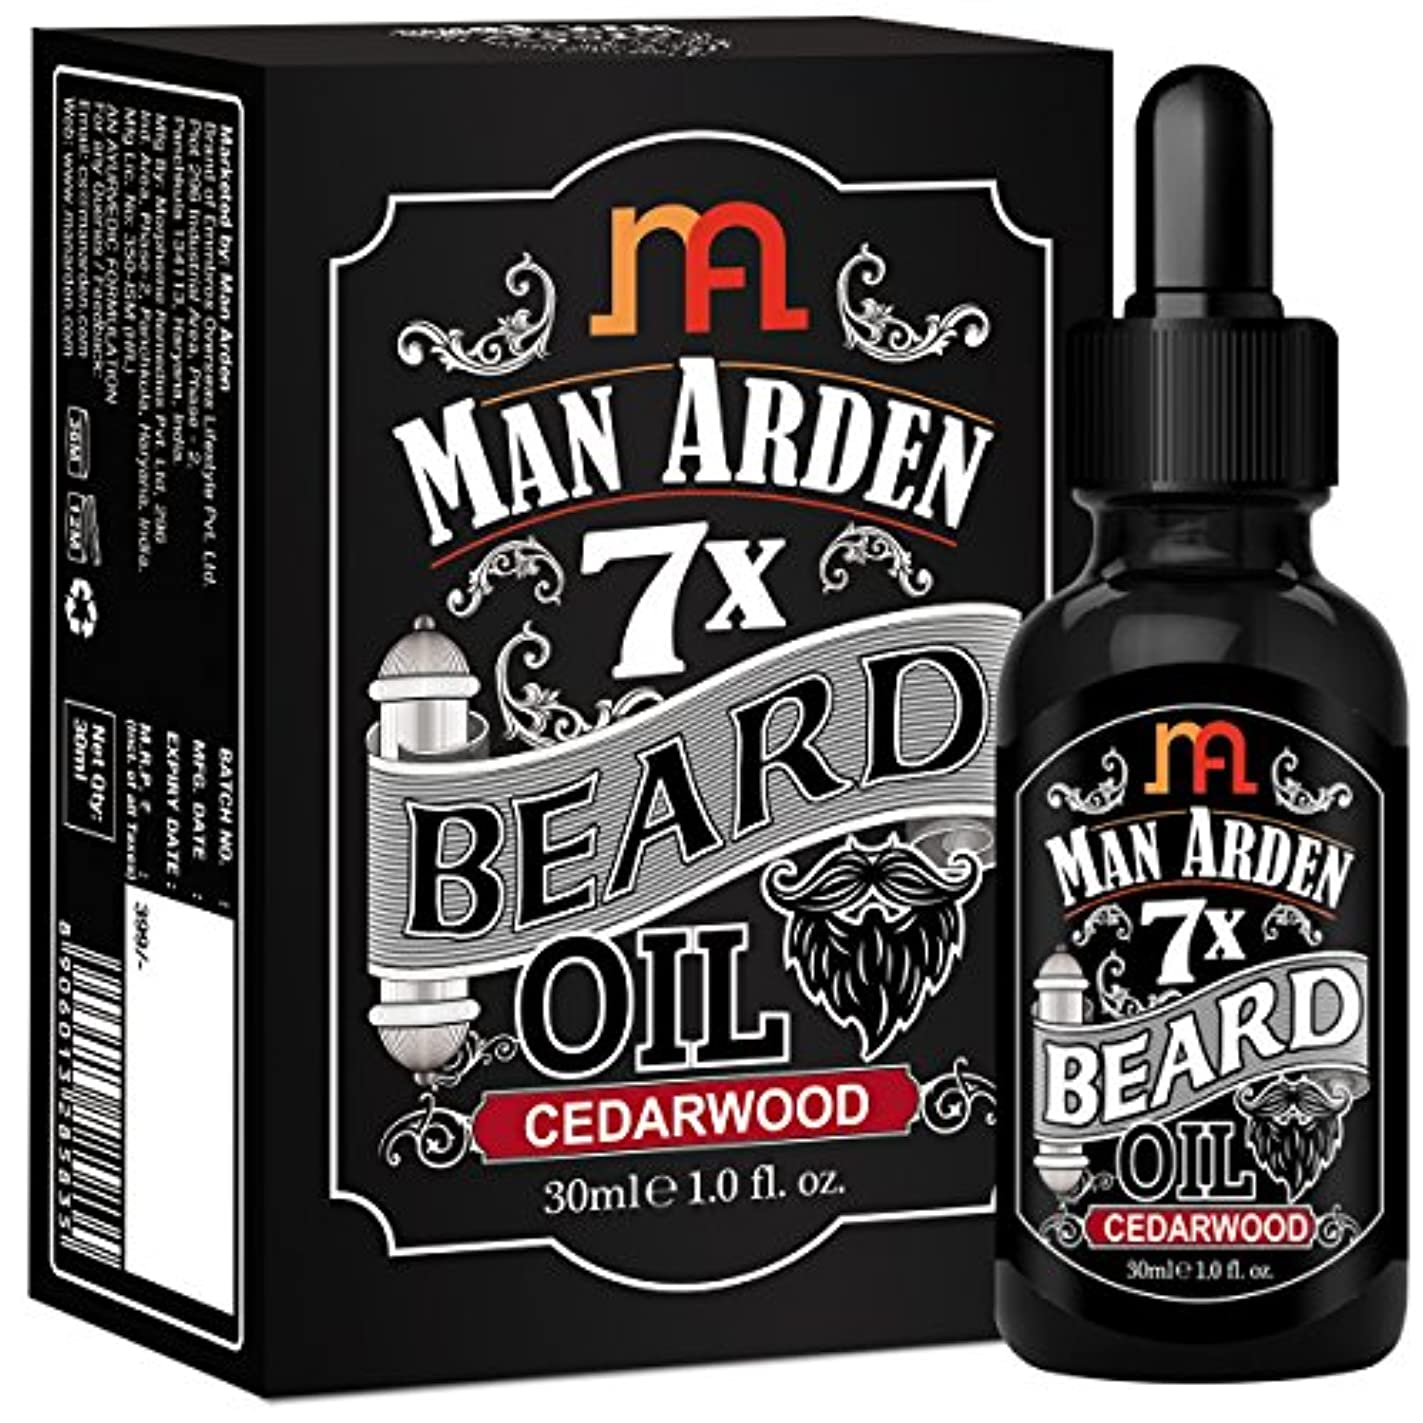 カーテン生産的懲戒Man Arden 7X Beard Oil 30ml (Cedarwood) - 7 Premium Oils Blend For Beard Growth & Nourishment